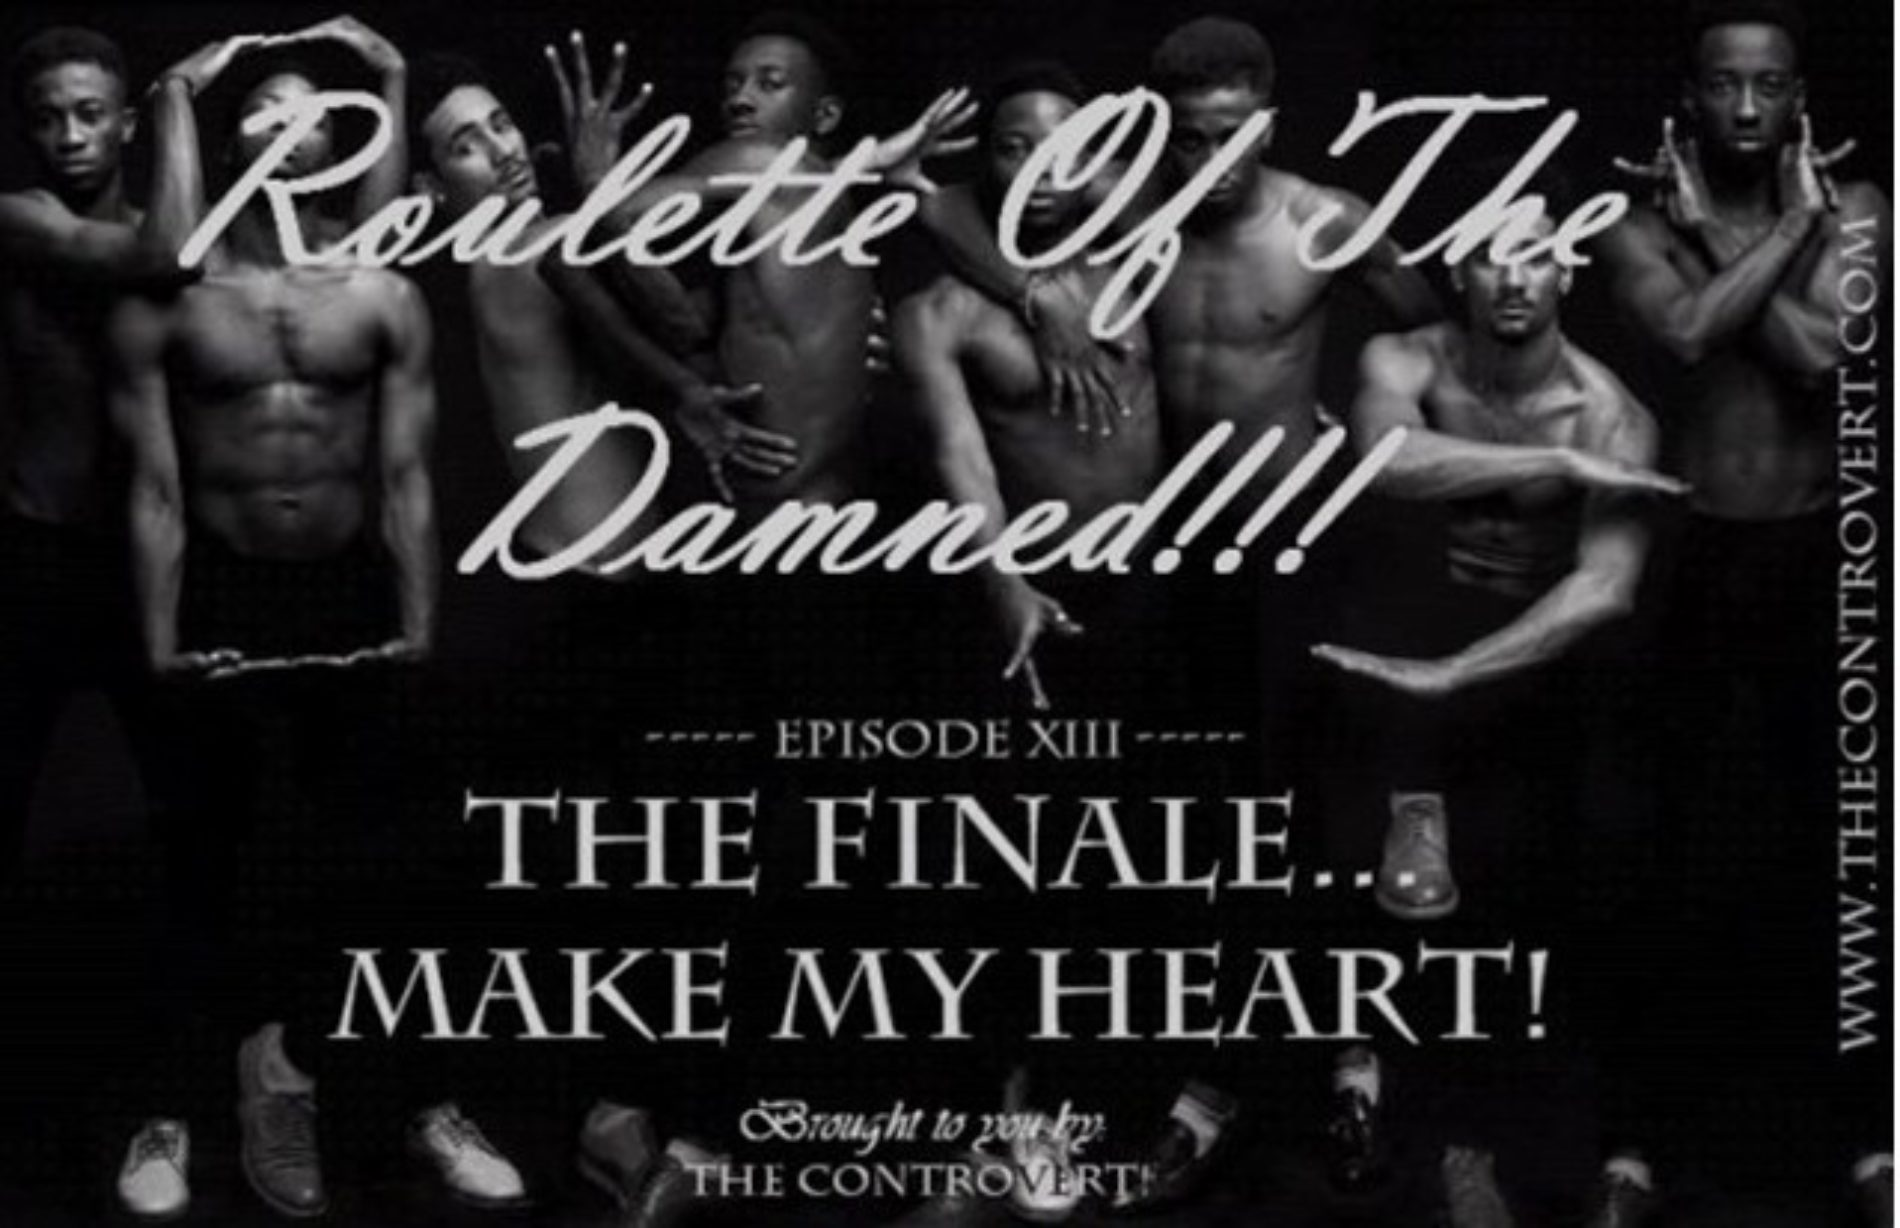 ROULETTE OF THE DAMNED 21: Make My Heart II